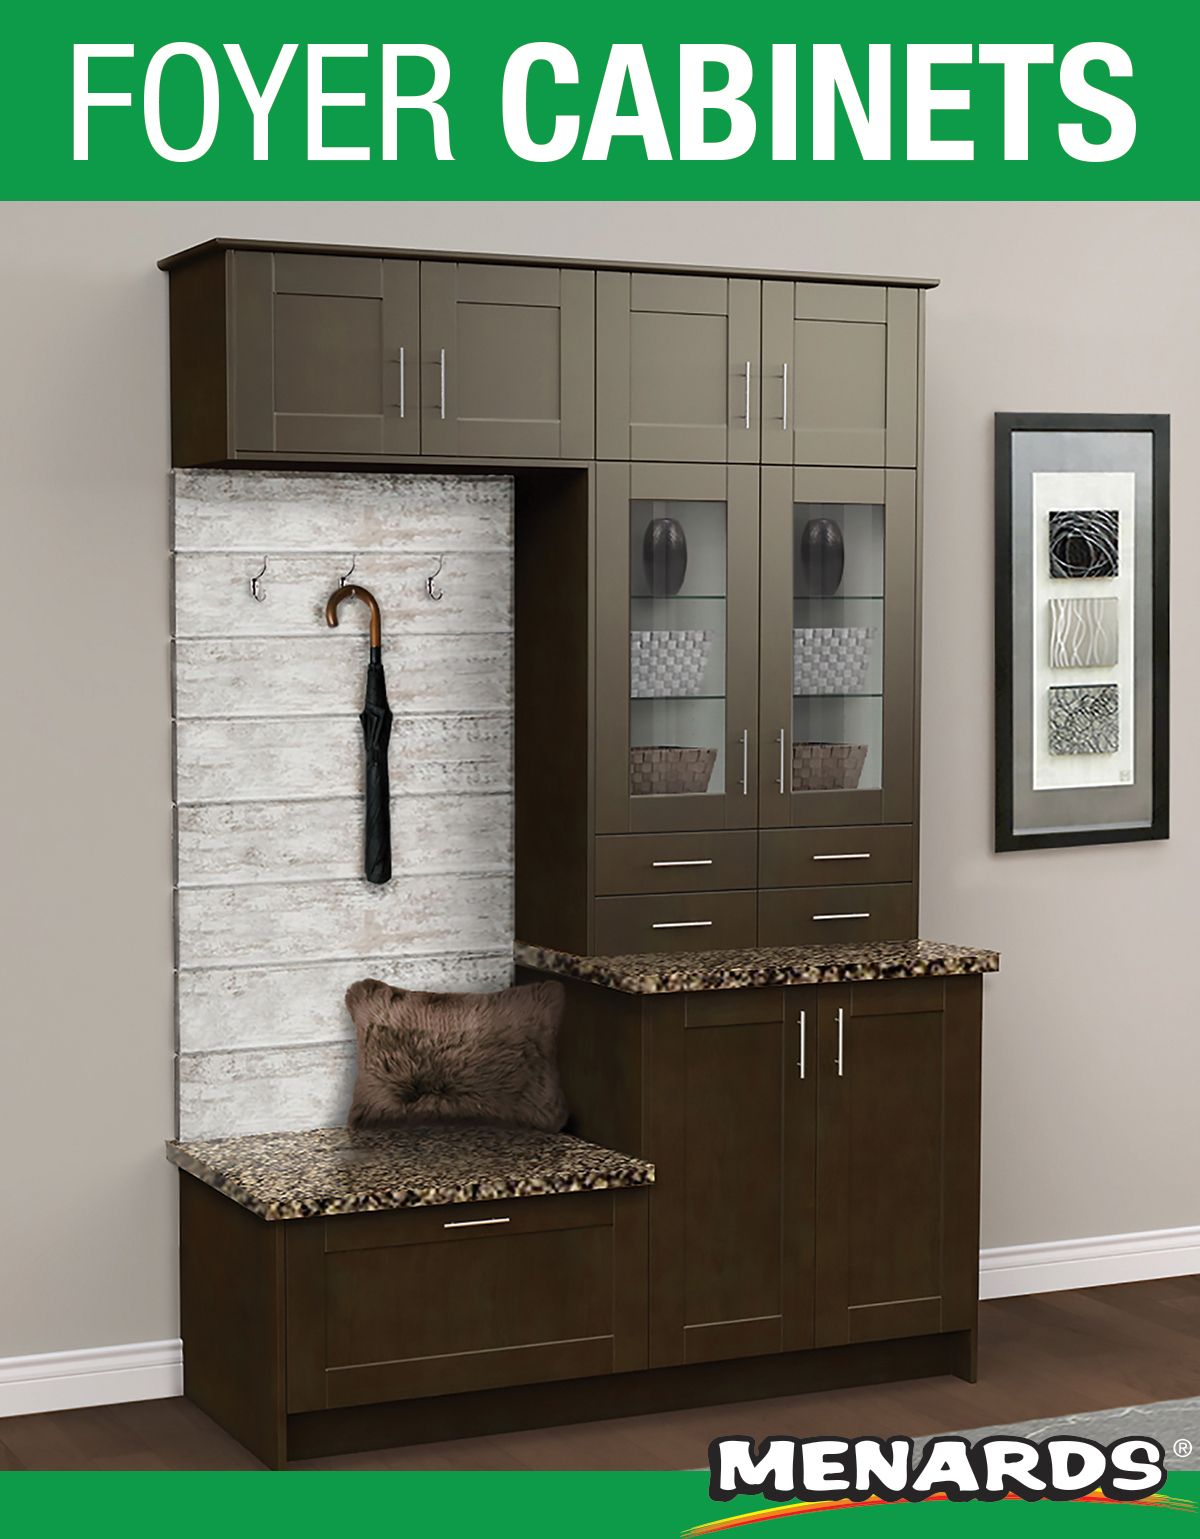 Klearvue Cabinetry Is A Menards Exclusive Cabinetry Program That